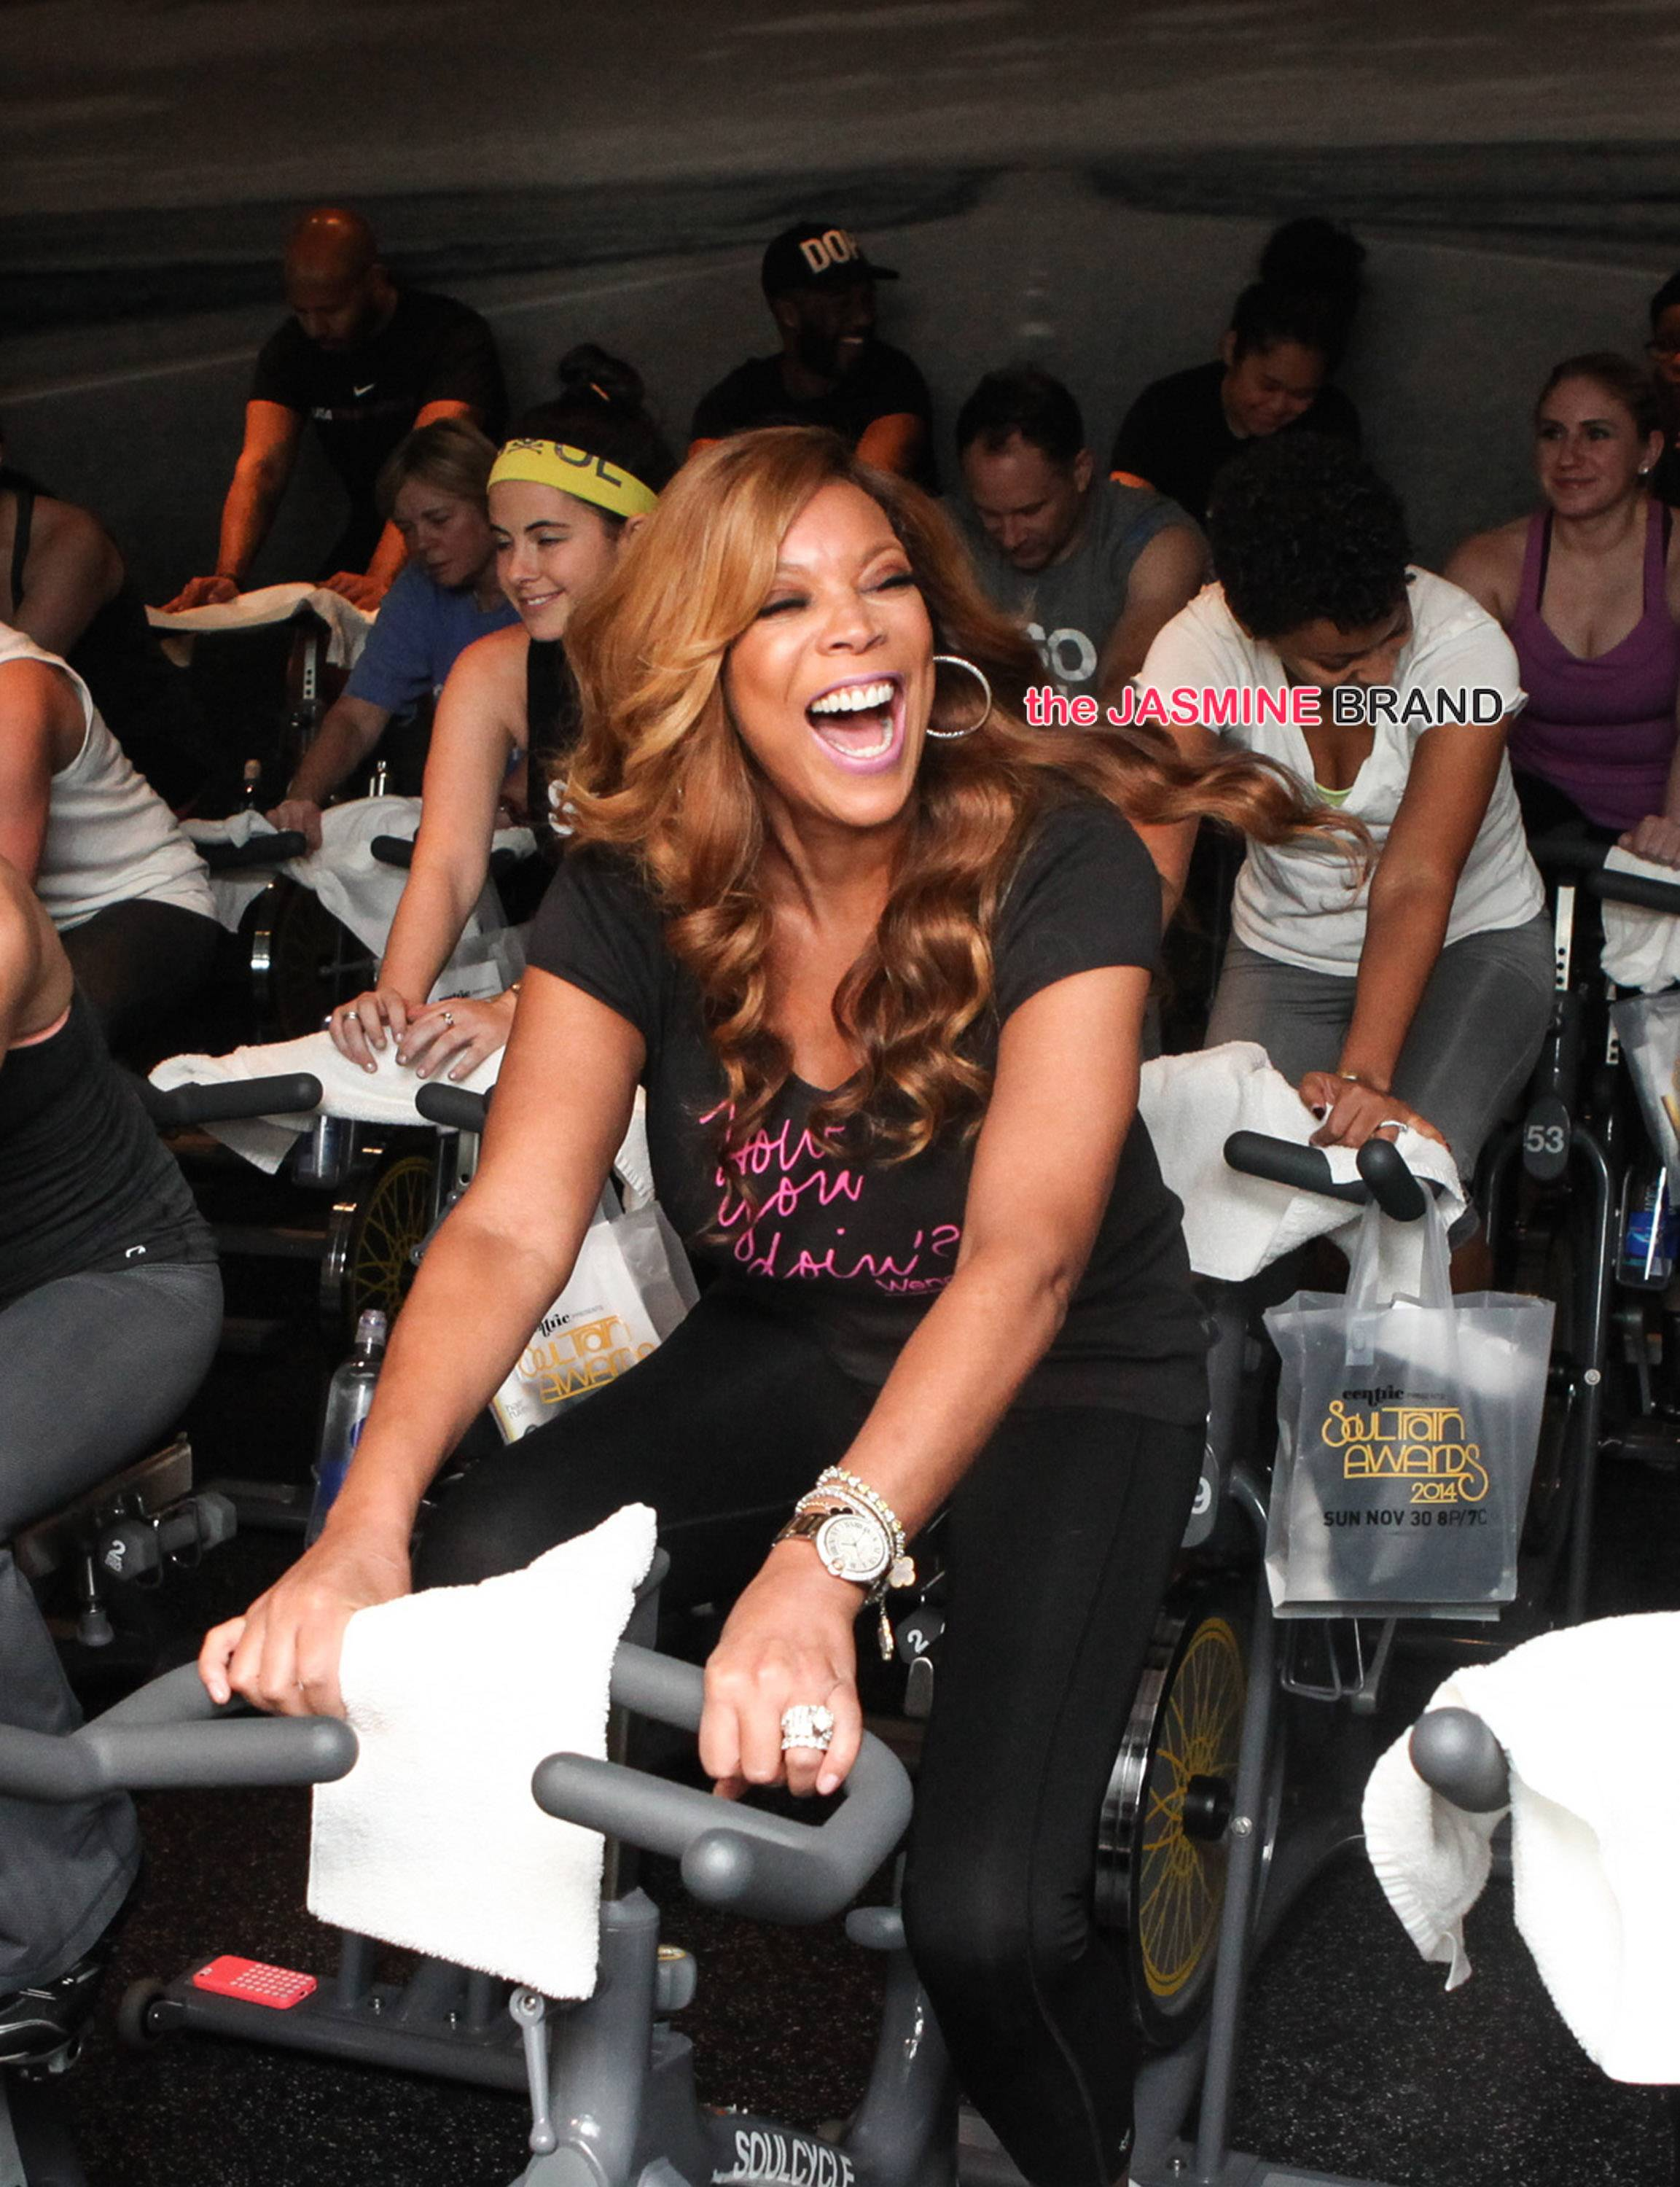 Wendy_Williams-Soul Cycle-Soul Train Awards 2014-the jasmine brand